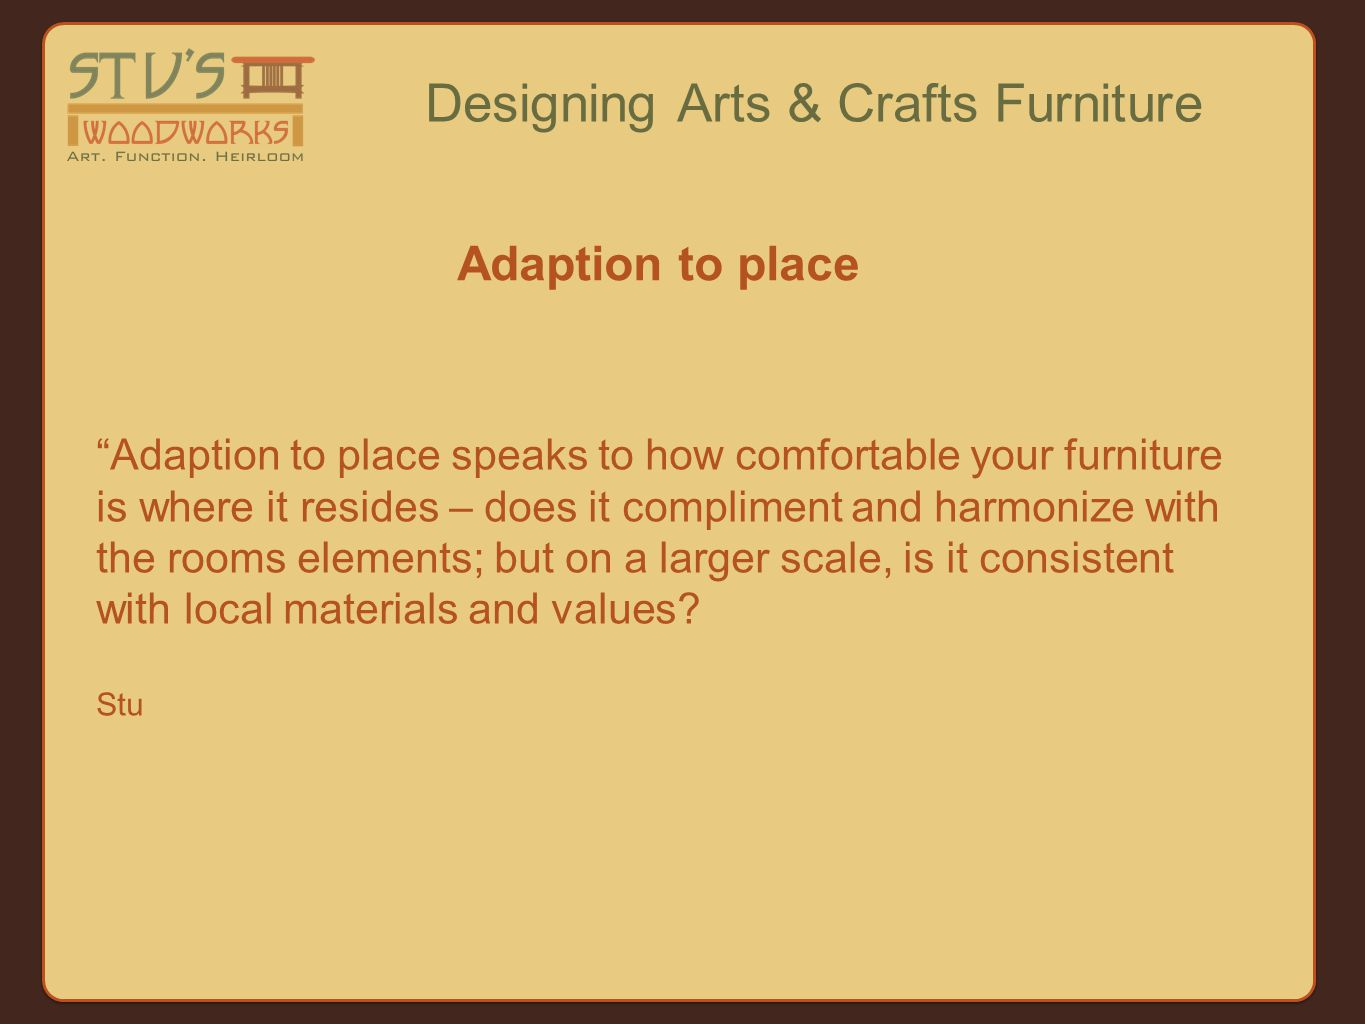 Adaption to place speaks to how comfortable your furniture is where it resides – does it compliment and harmonize with the rooms elements; but on a larger scale, is it consistent with local materials and values.